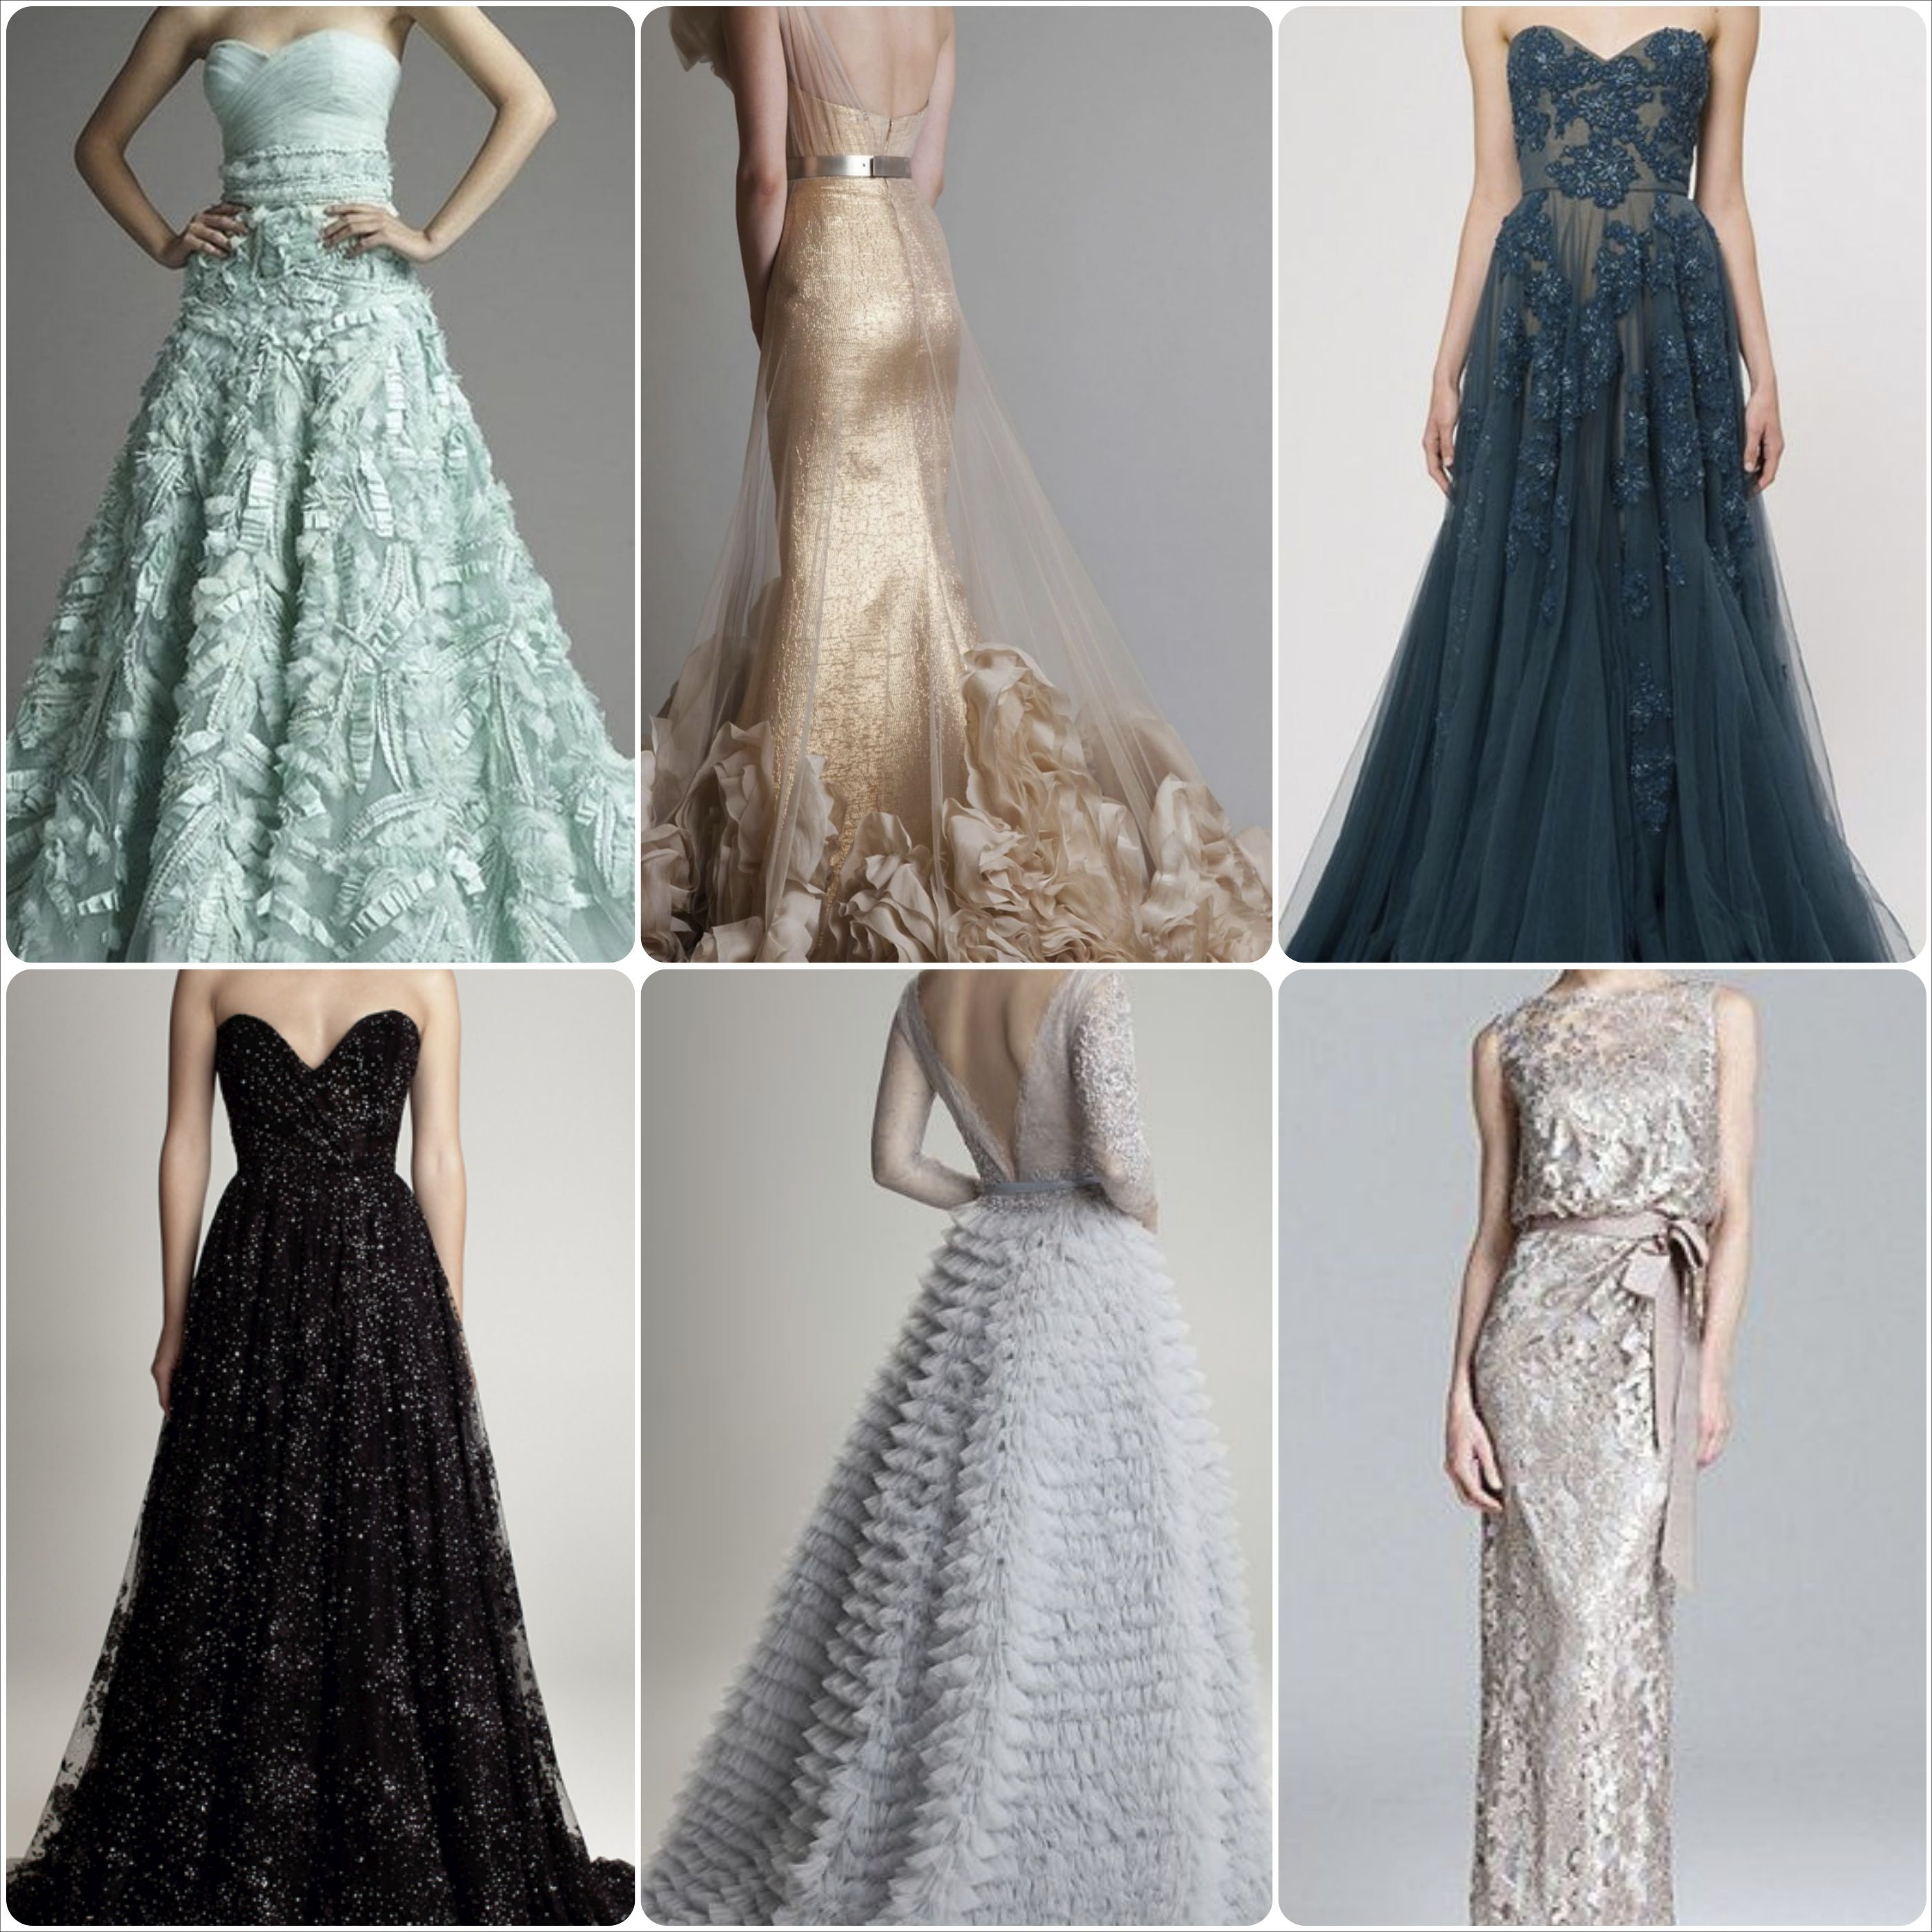 Trendy Tuesday - Colored Gowns